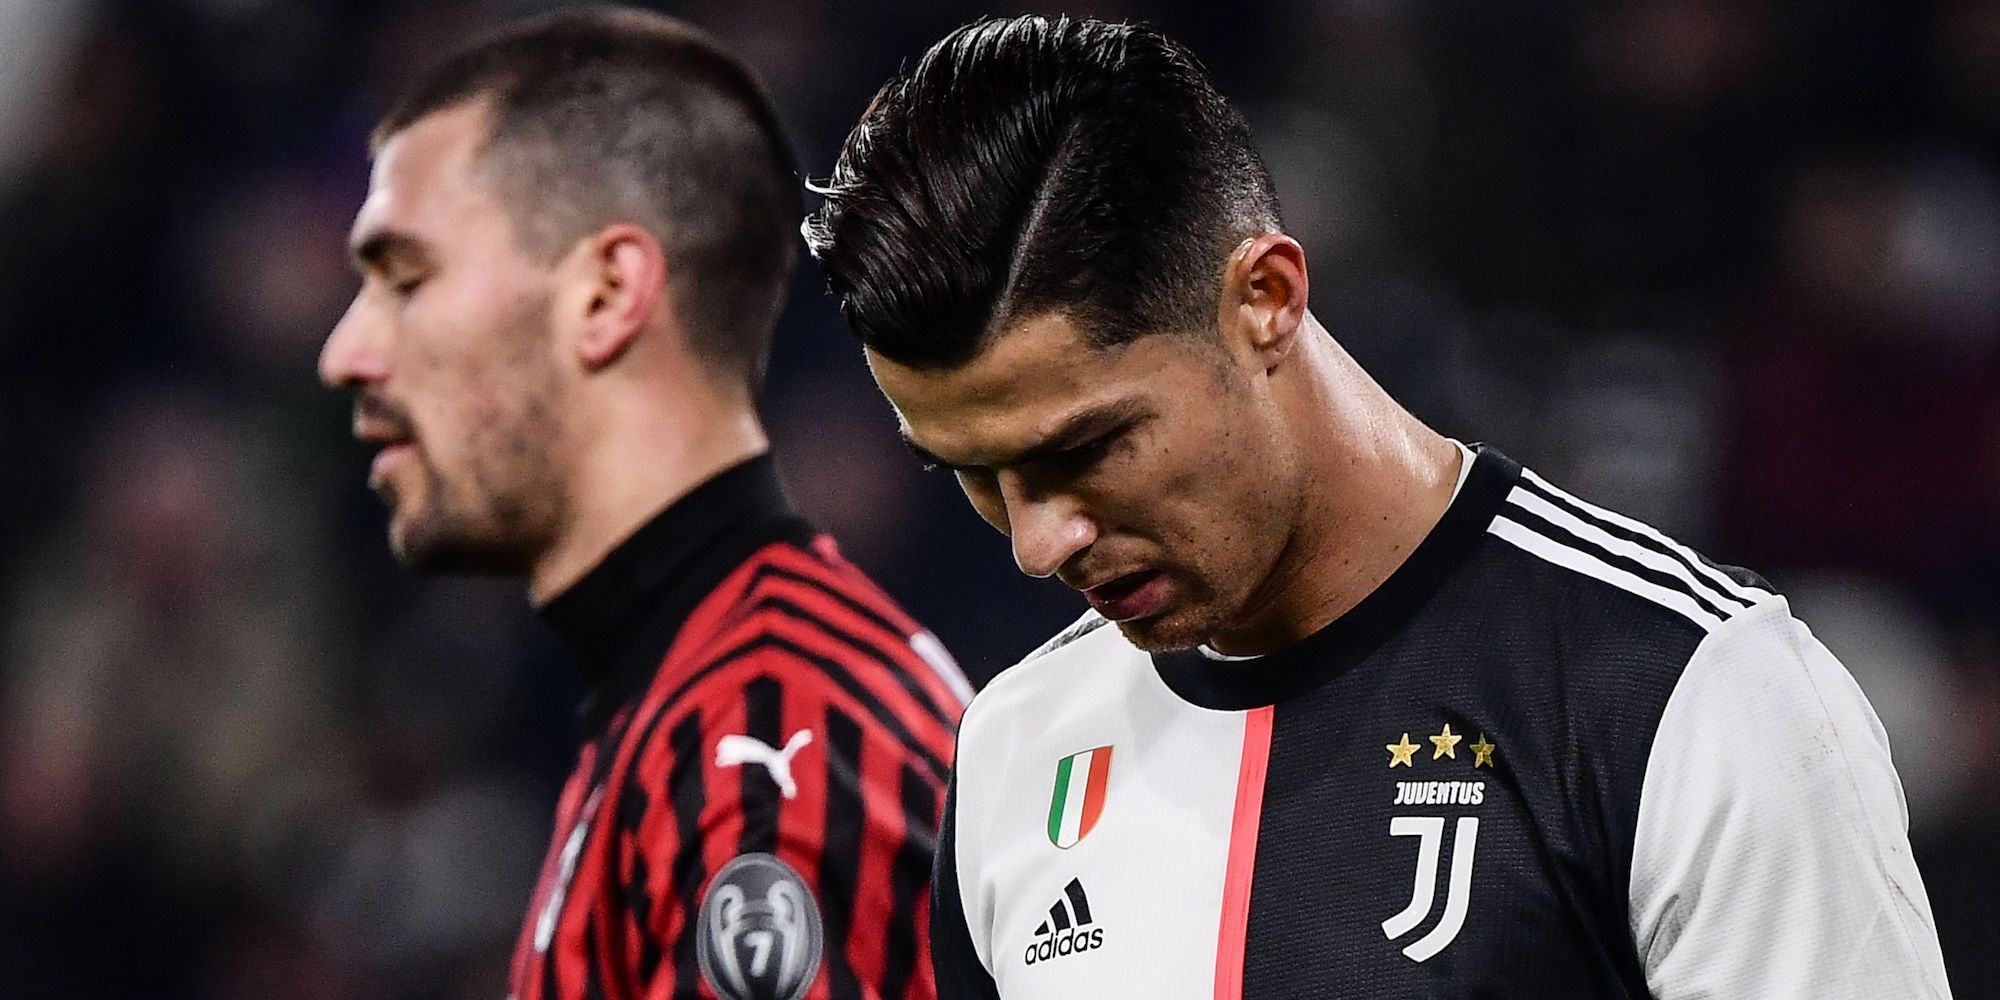 Italy's rampant coronavirus outbreak is forcing its biggest football matches, including a potential title decider, to be played in empty stadiums